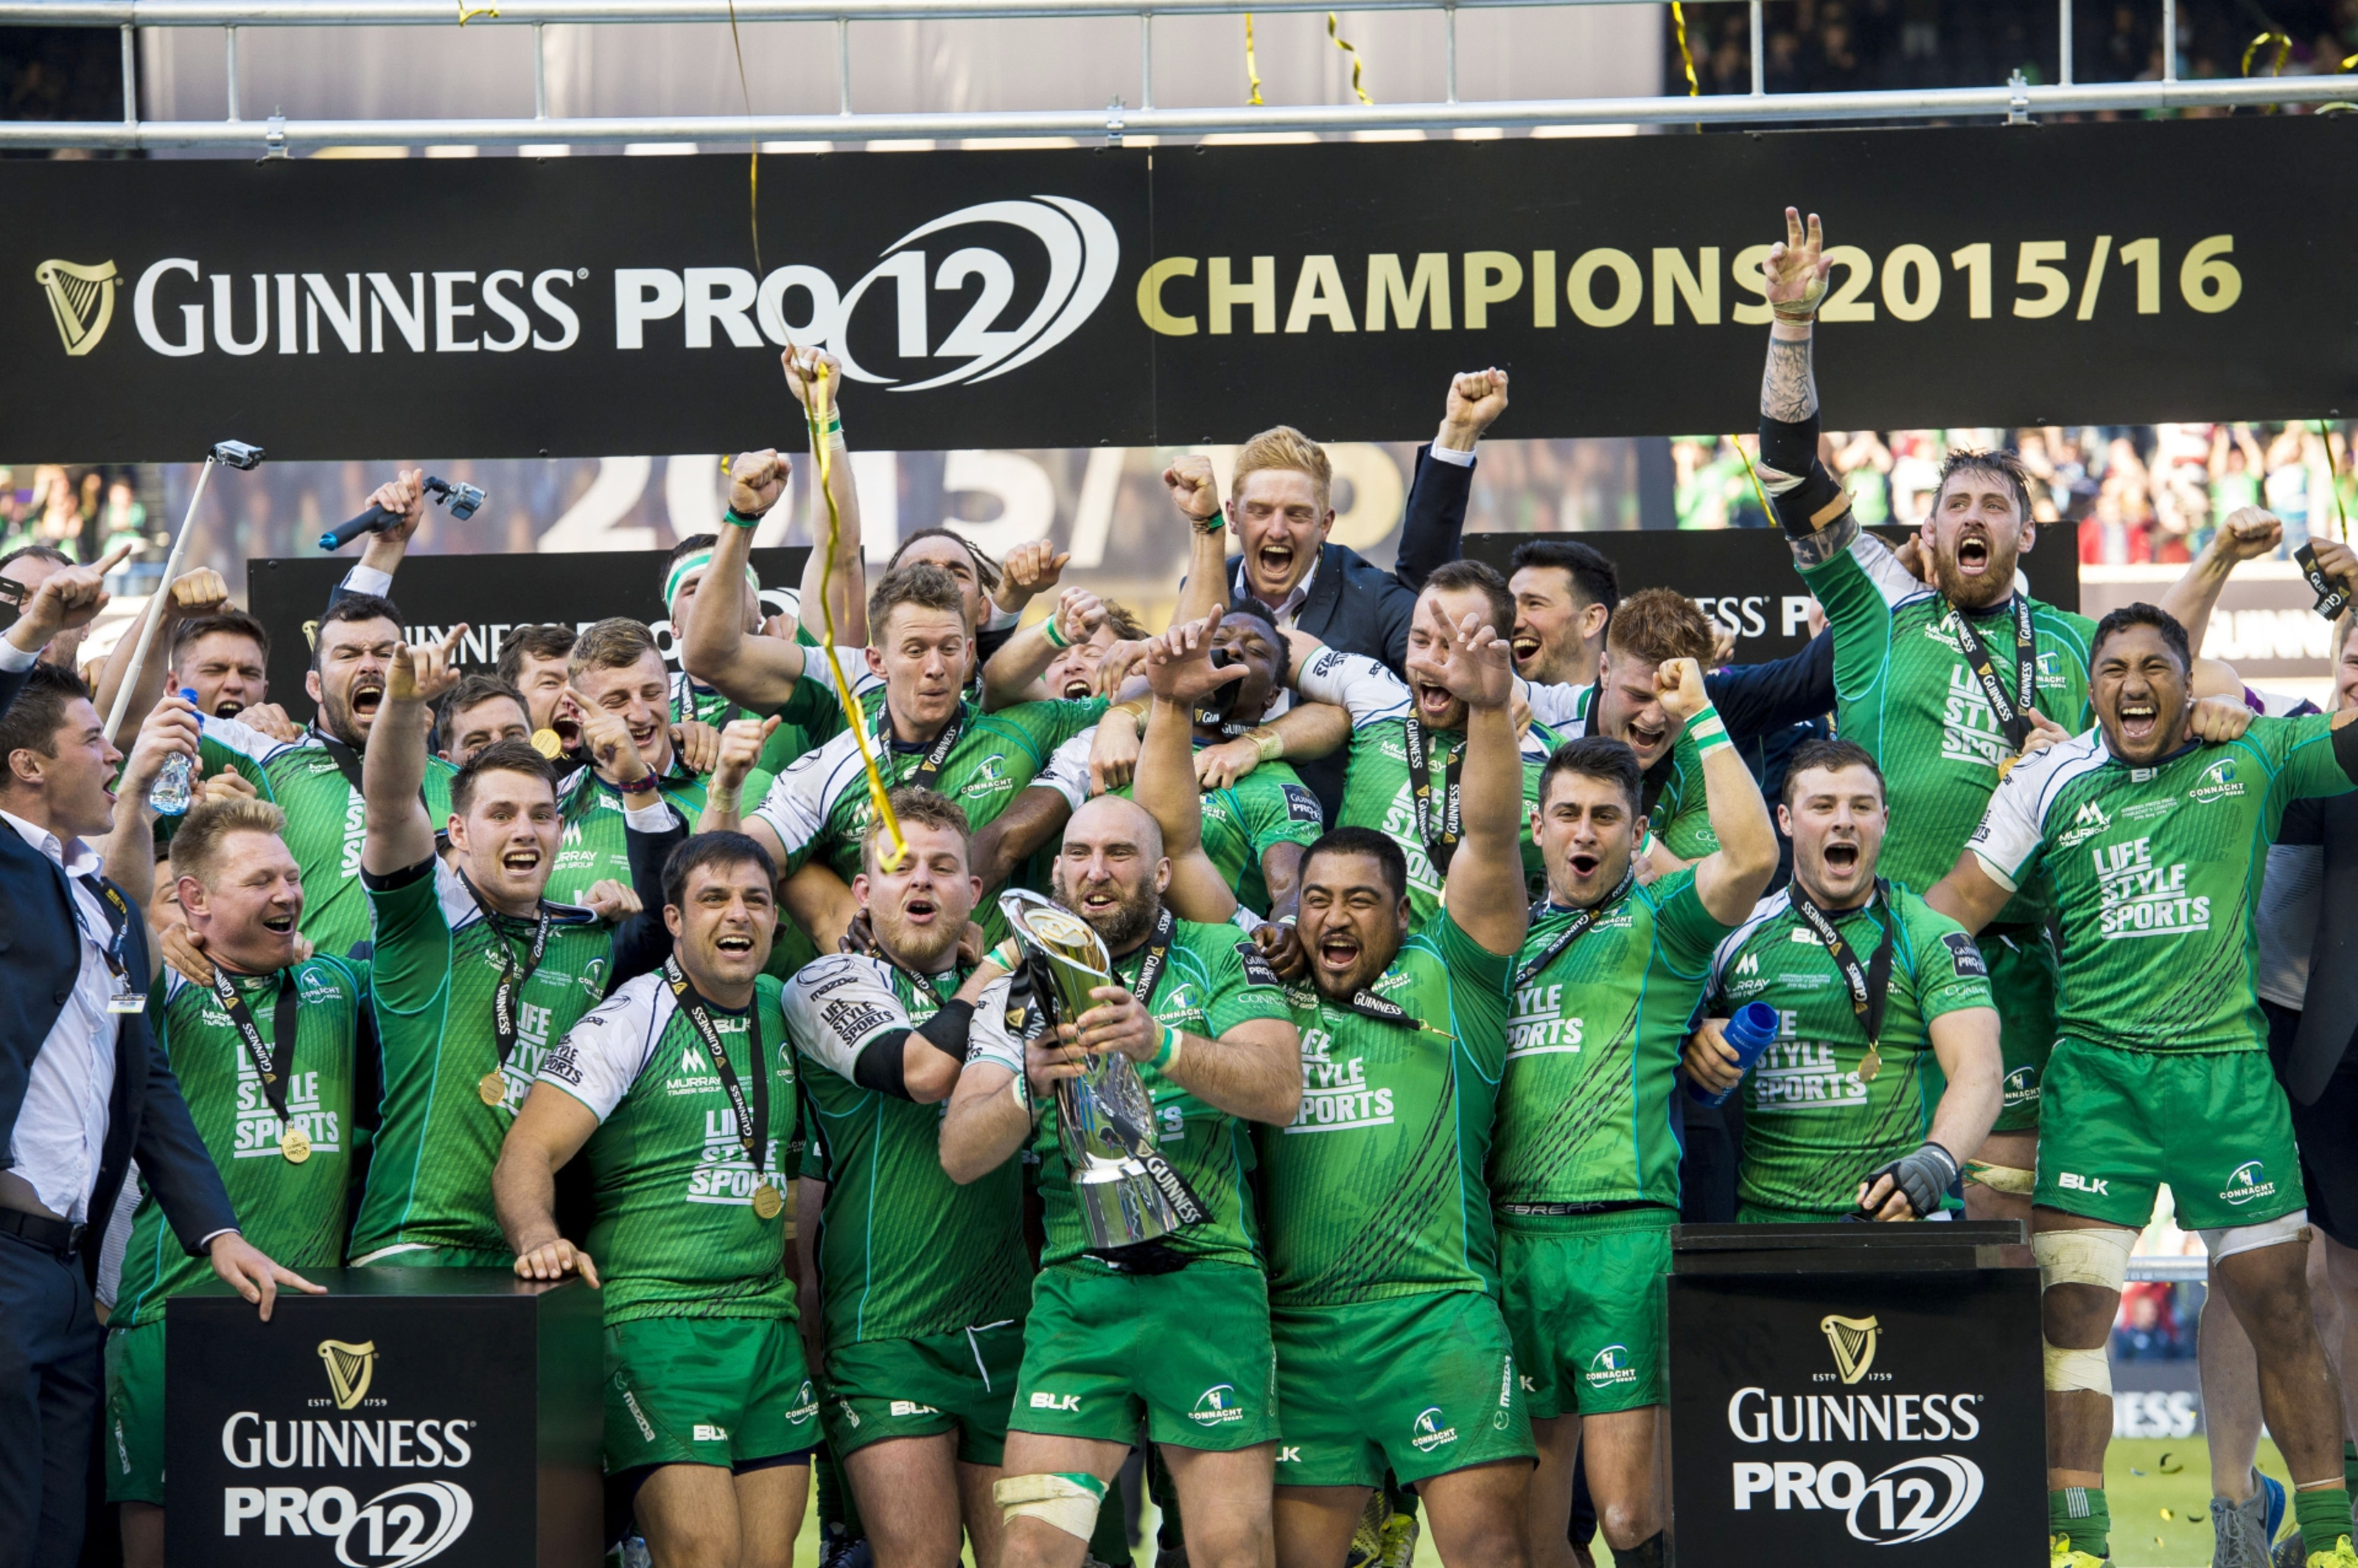 Connacht celebrate their win in the Guinness PRO12 final at Murrayfield.